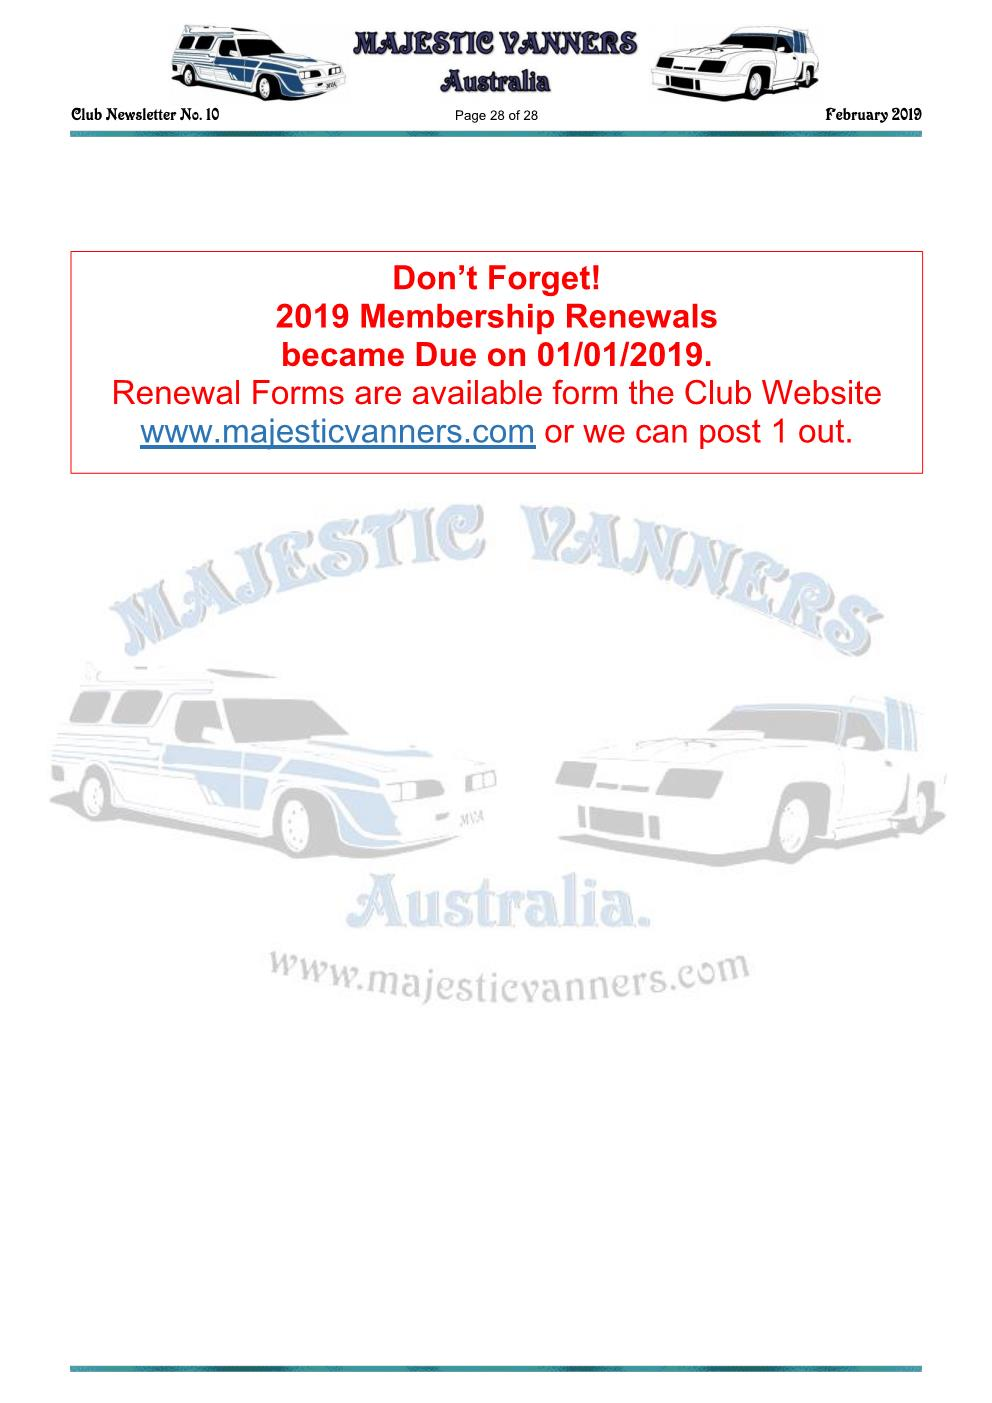 MAJESTIC VANNERS Newsletter Issue No: 10 February 2019 Mv_new37